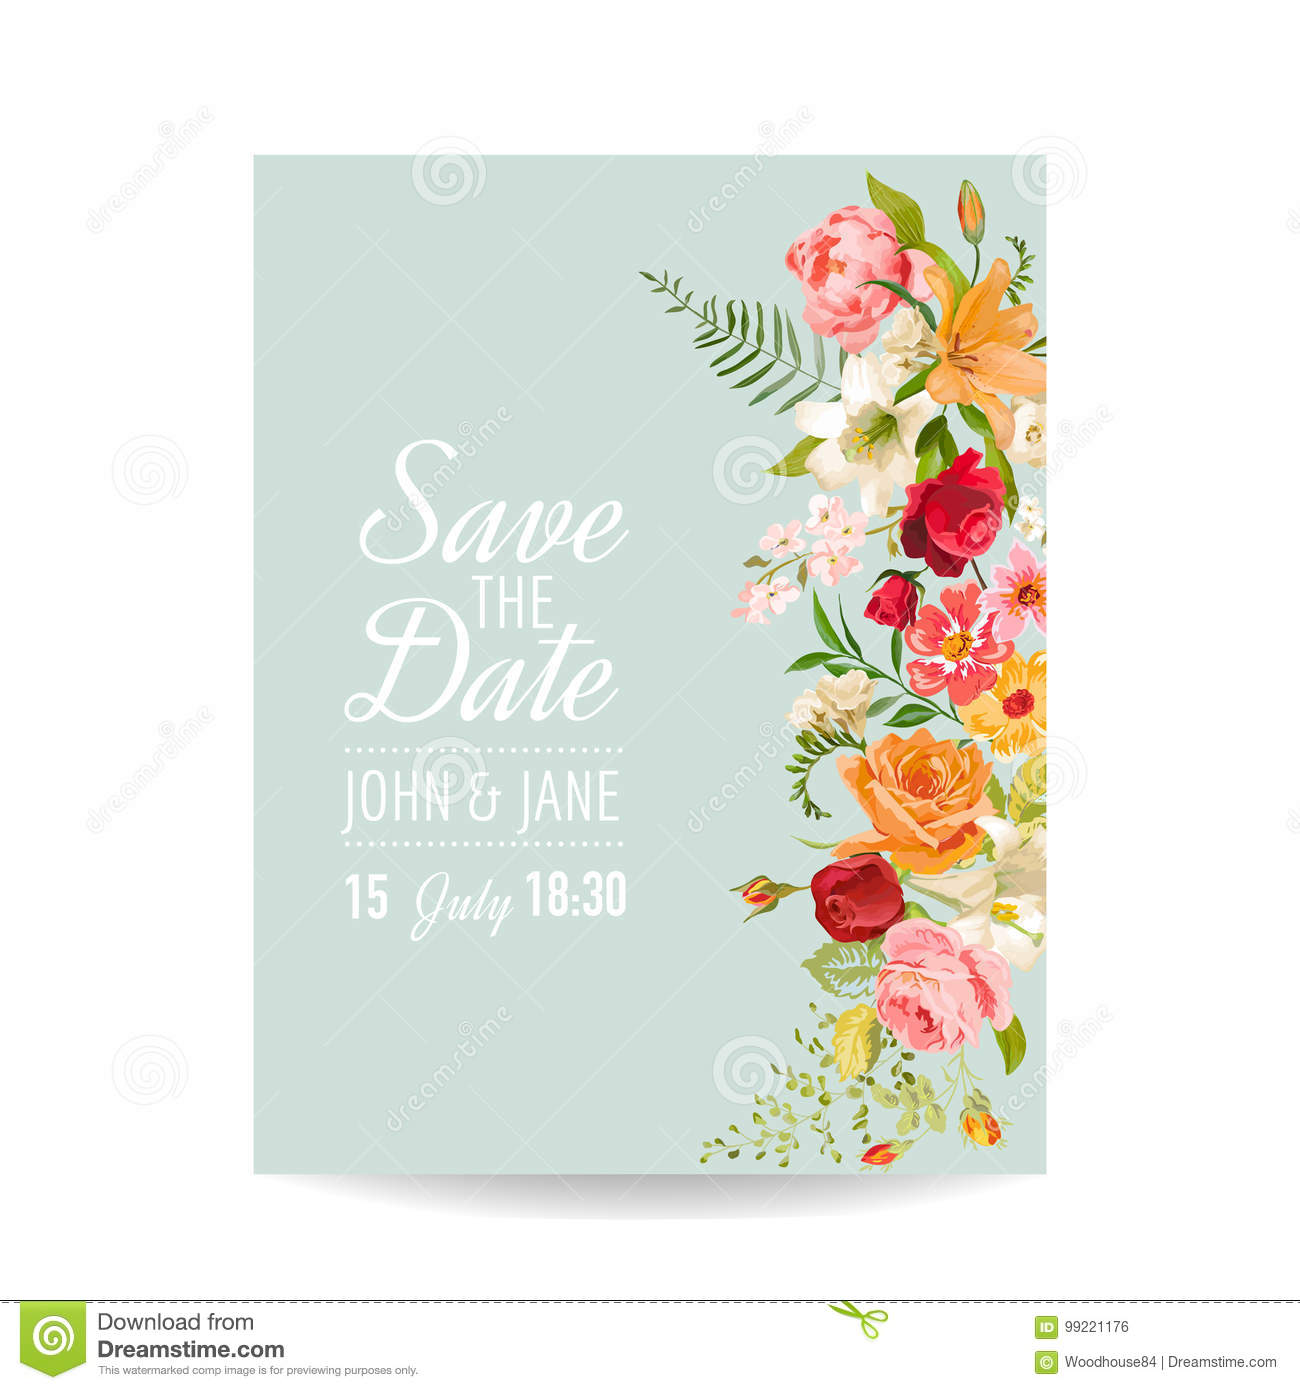 Wedding invitation card with lily flowers and orchid baby shower download wedding invitation card with lily flowers and orchid baby shower decoration stock vector filmwisefo